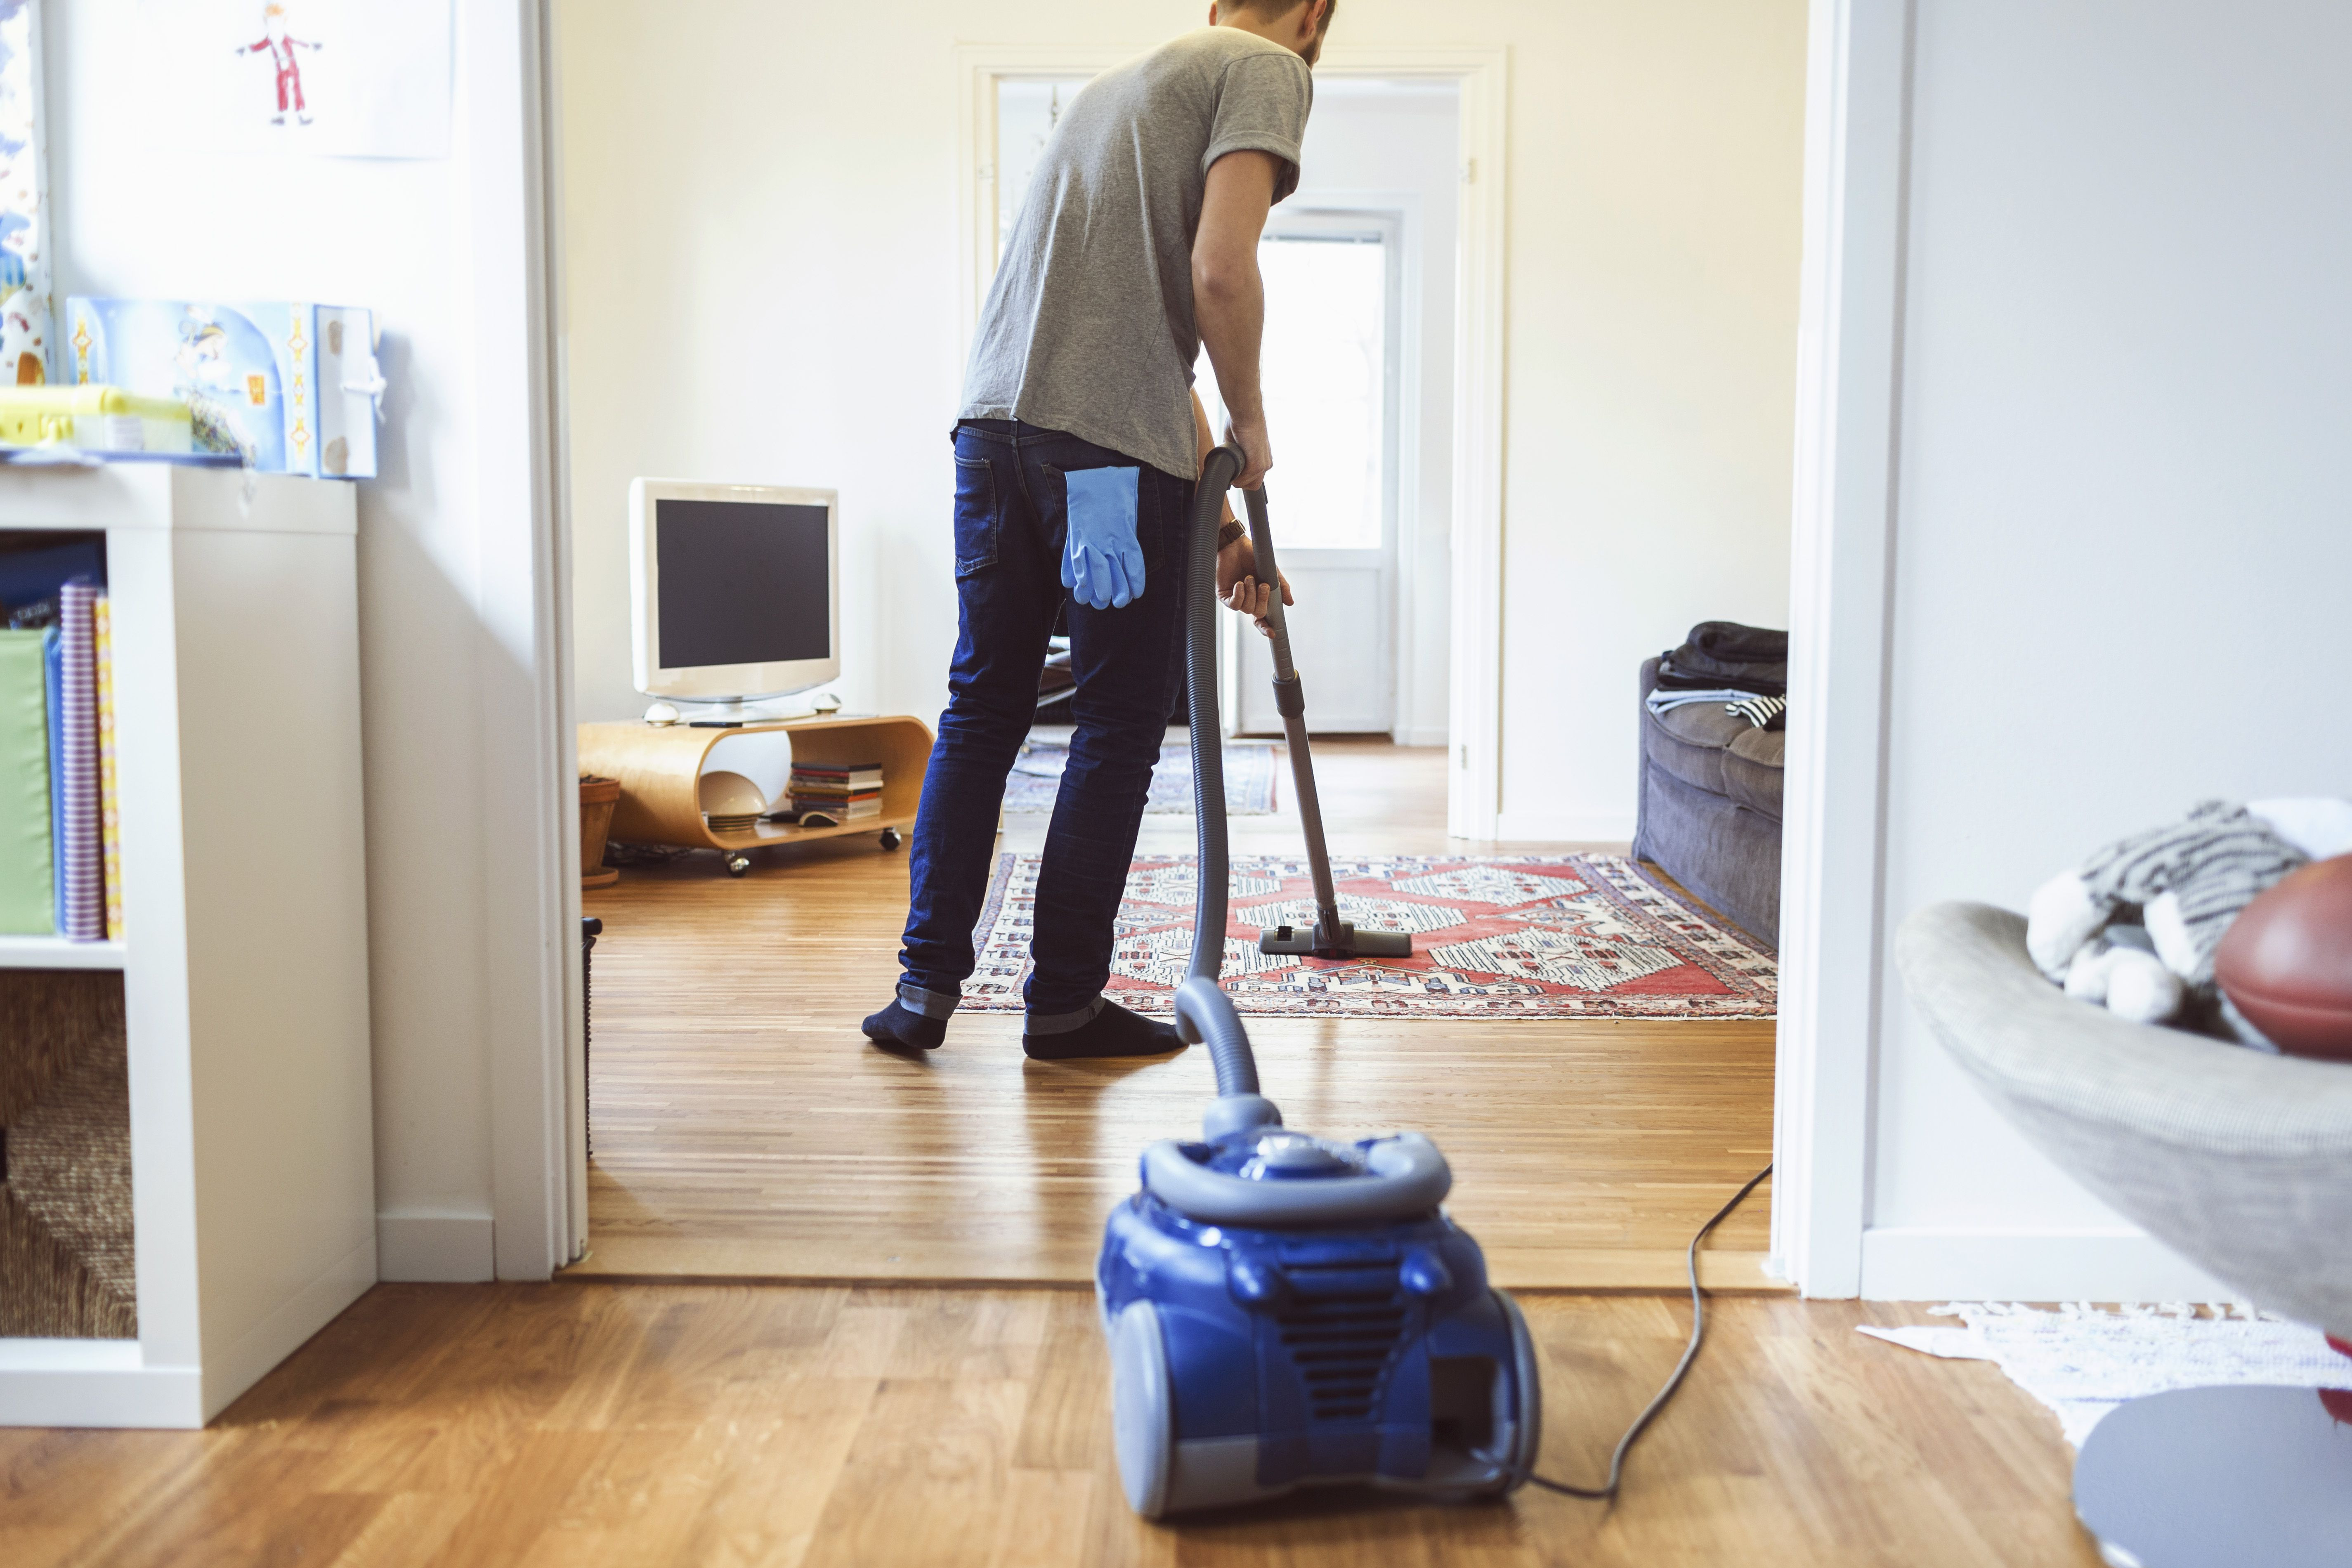 how to clean hardwood floors under carpet of 9 useful tips for eliminating house mites in rear view of man vacuuming carpet 562452131 5b04618b04d1cf003aa8304a